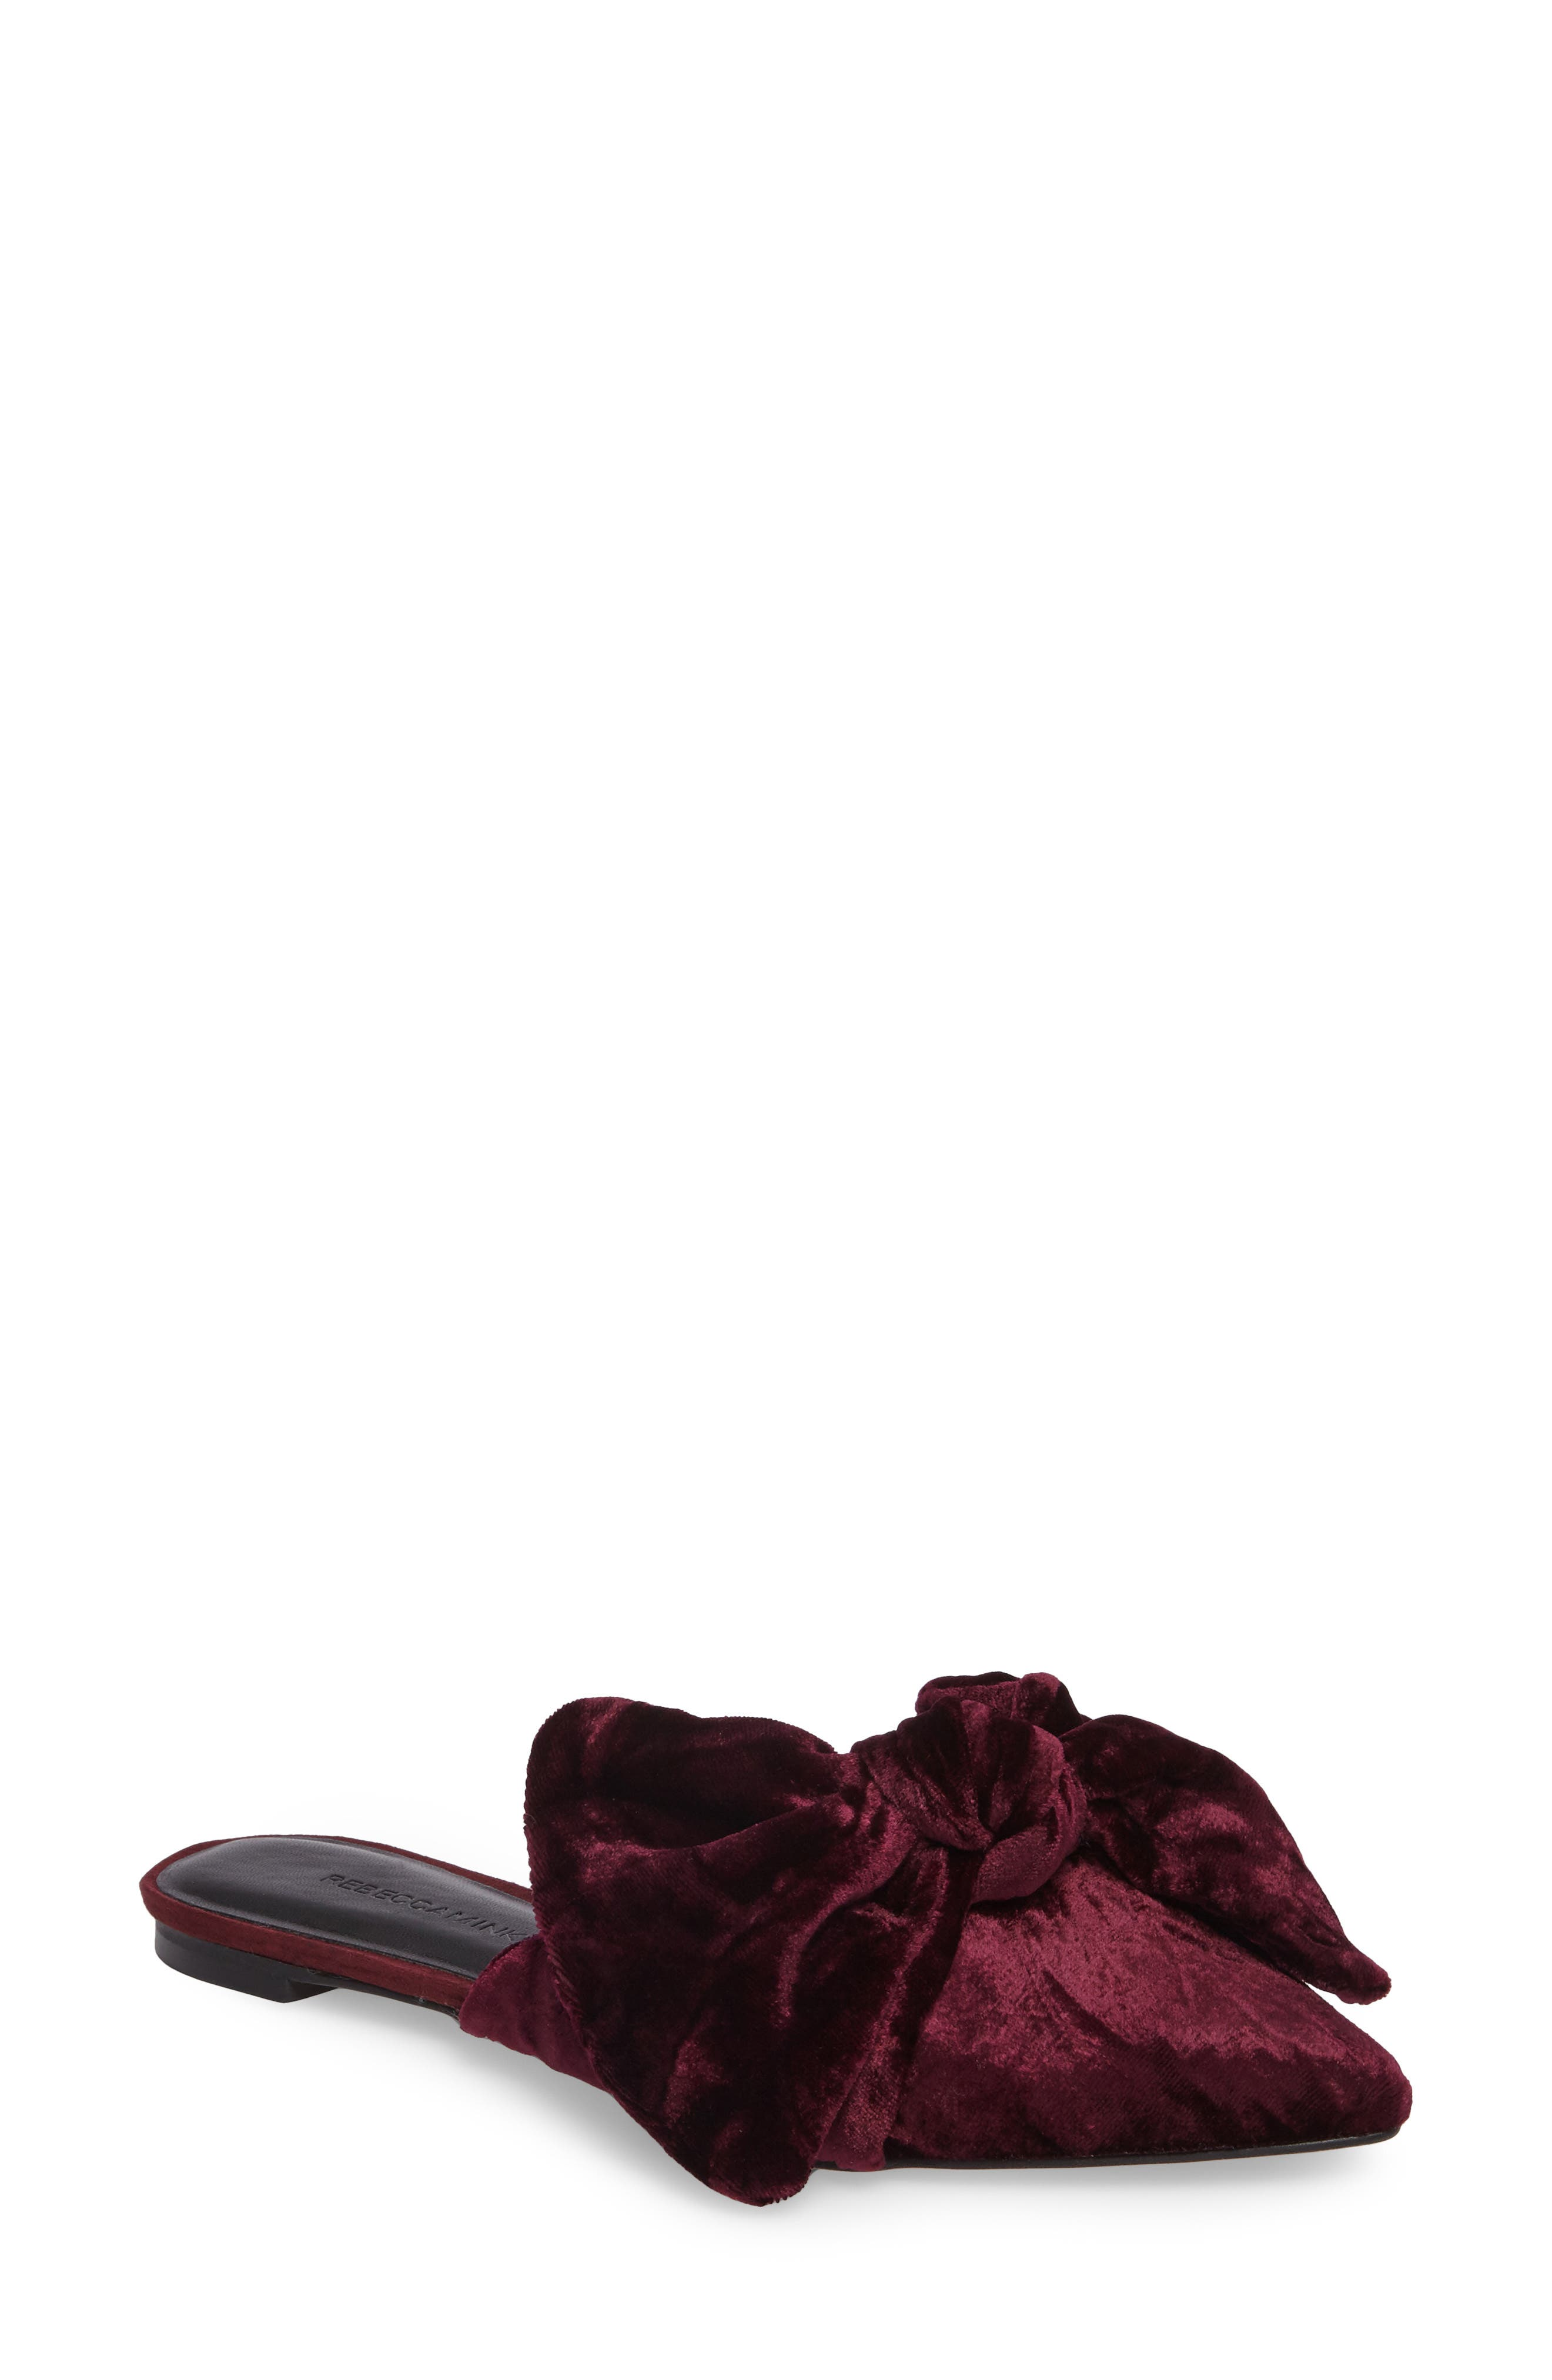 Alternate Image 1 Selected - Rebecca Minkoff Alexis Bow Mule (Women)